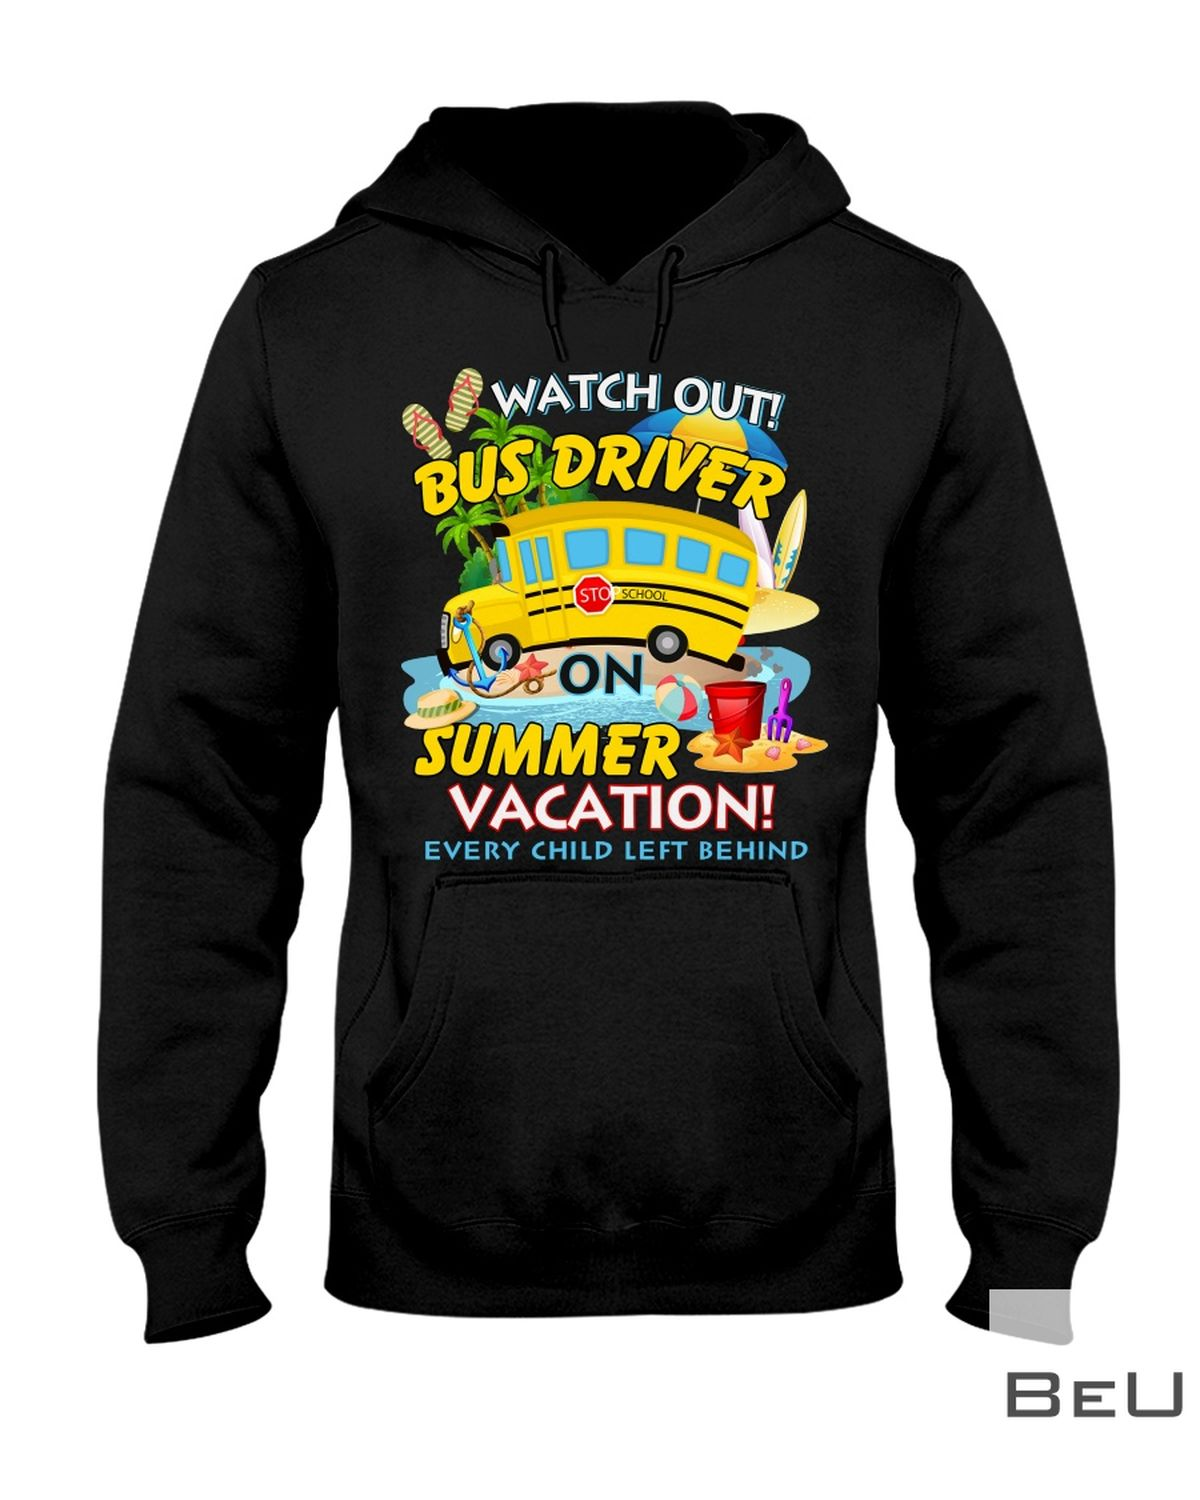 Watch Out Bus Driver On Summer Vacation Every Child Left Behind Shirtz